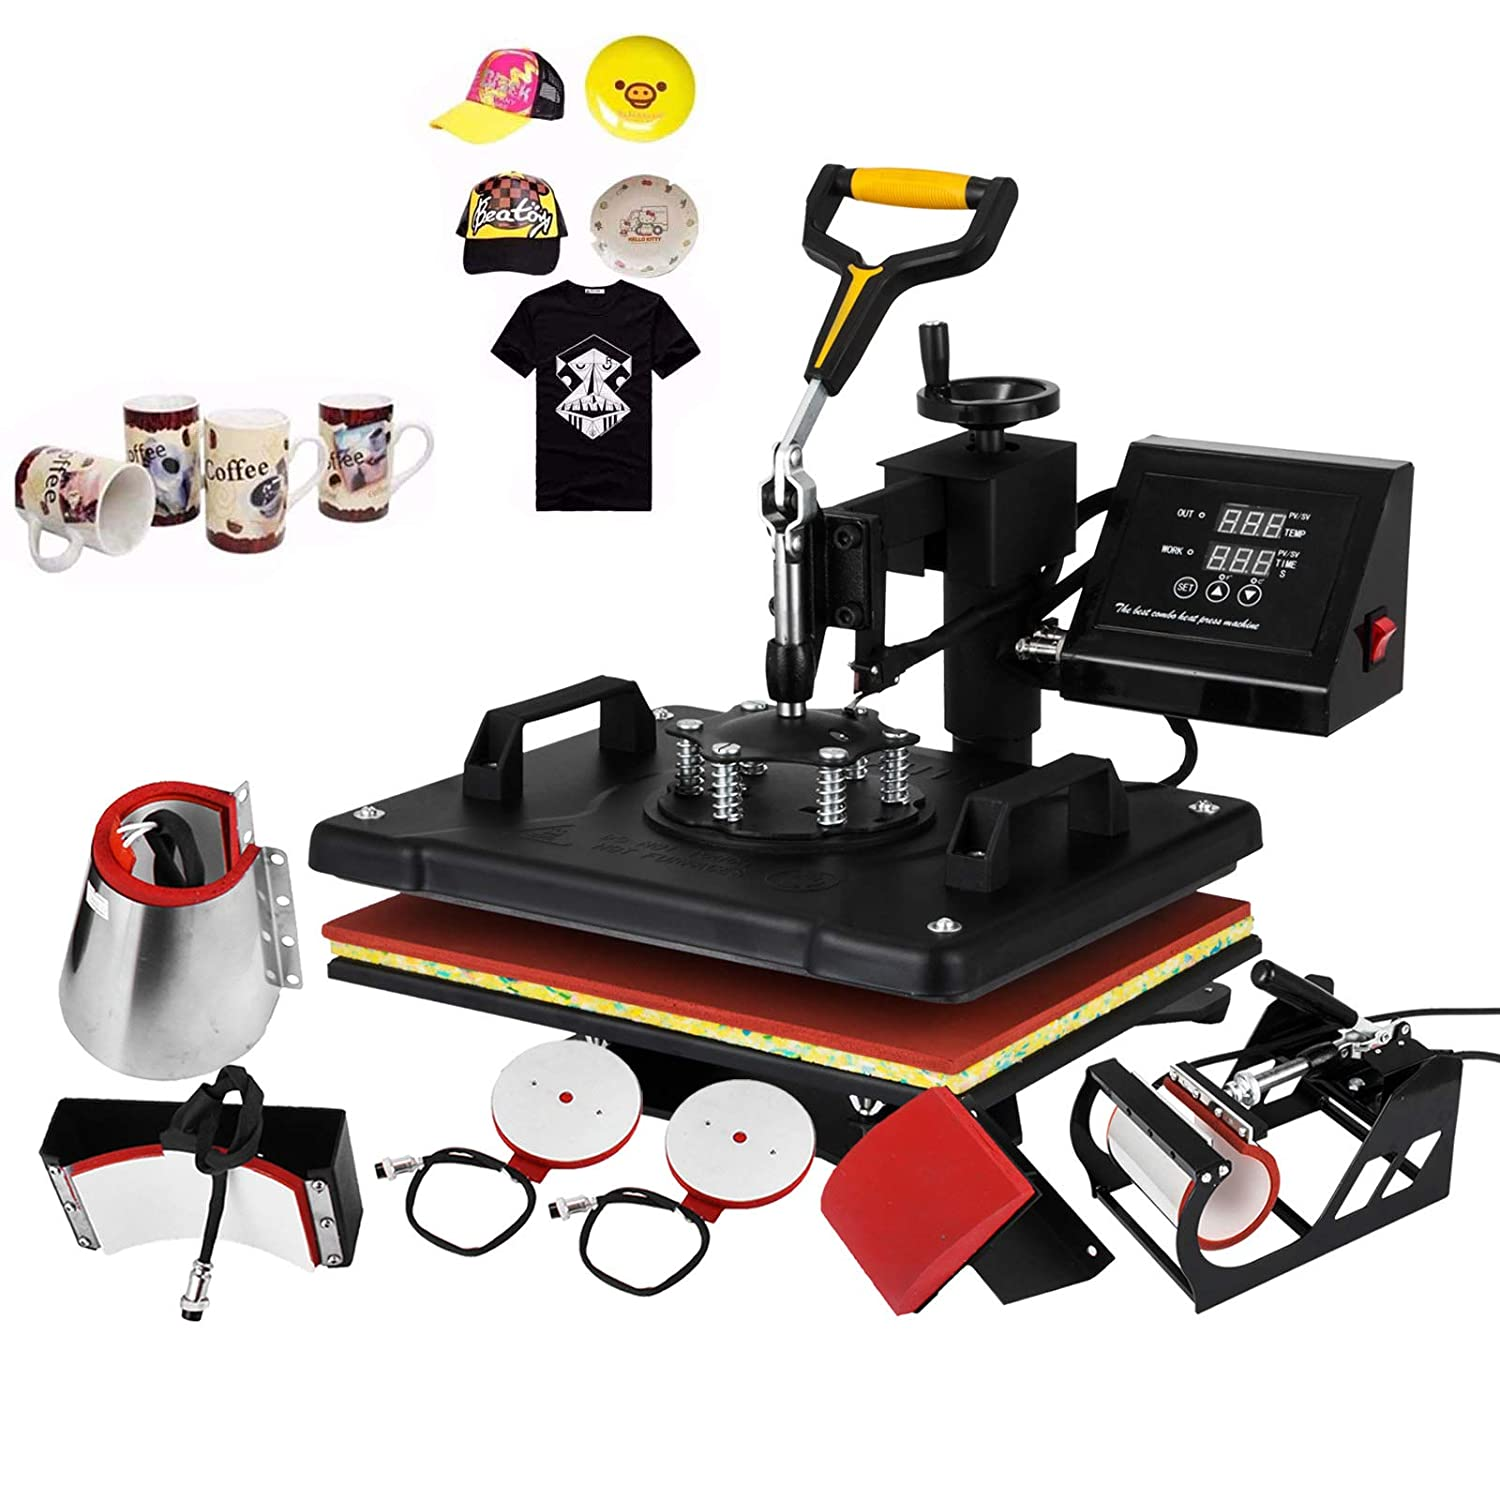 Mophorn Heat Press Machine 12x15 inch T-Shirt Heat Press Transfer Combo Swing-Away Presser Mug Hat Press 8IN1 Digital Multifunction Transfer (8in1 Presser)